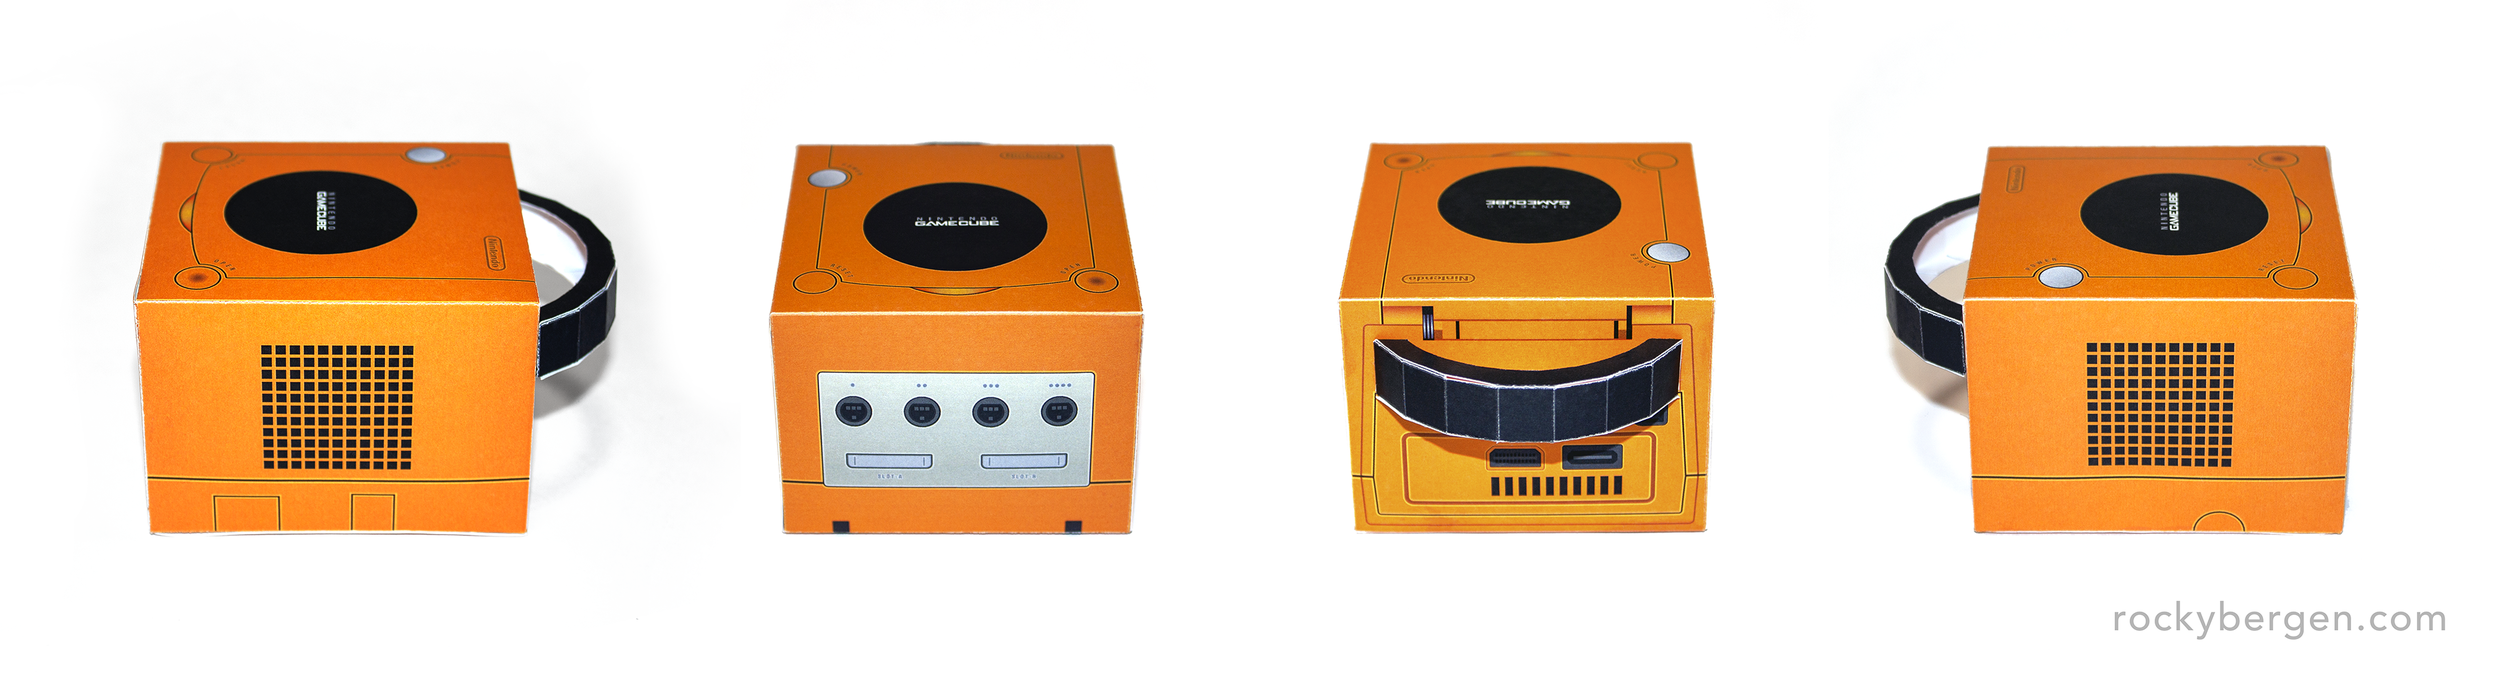 The Spice-coloured GameCube was exclusive to Japan.